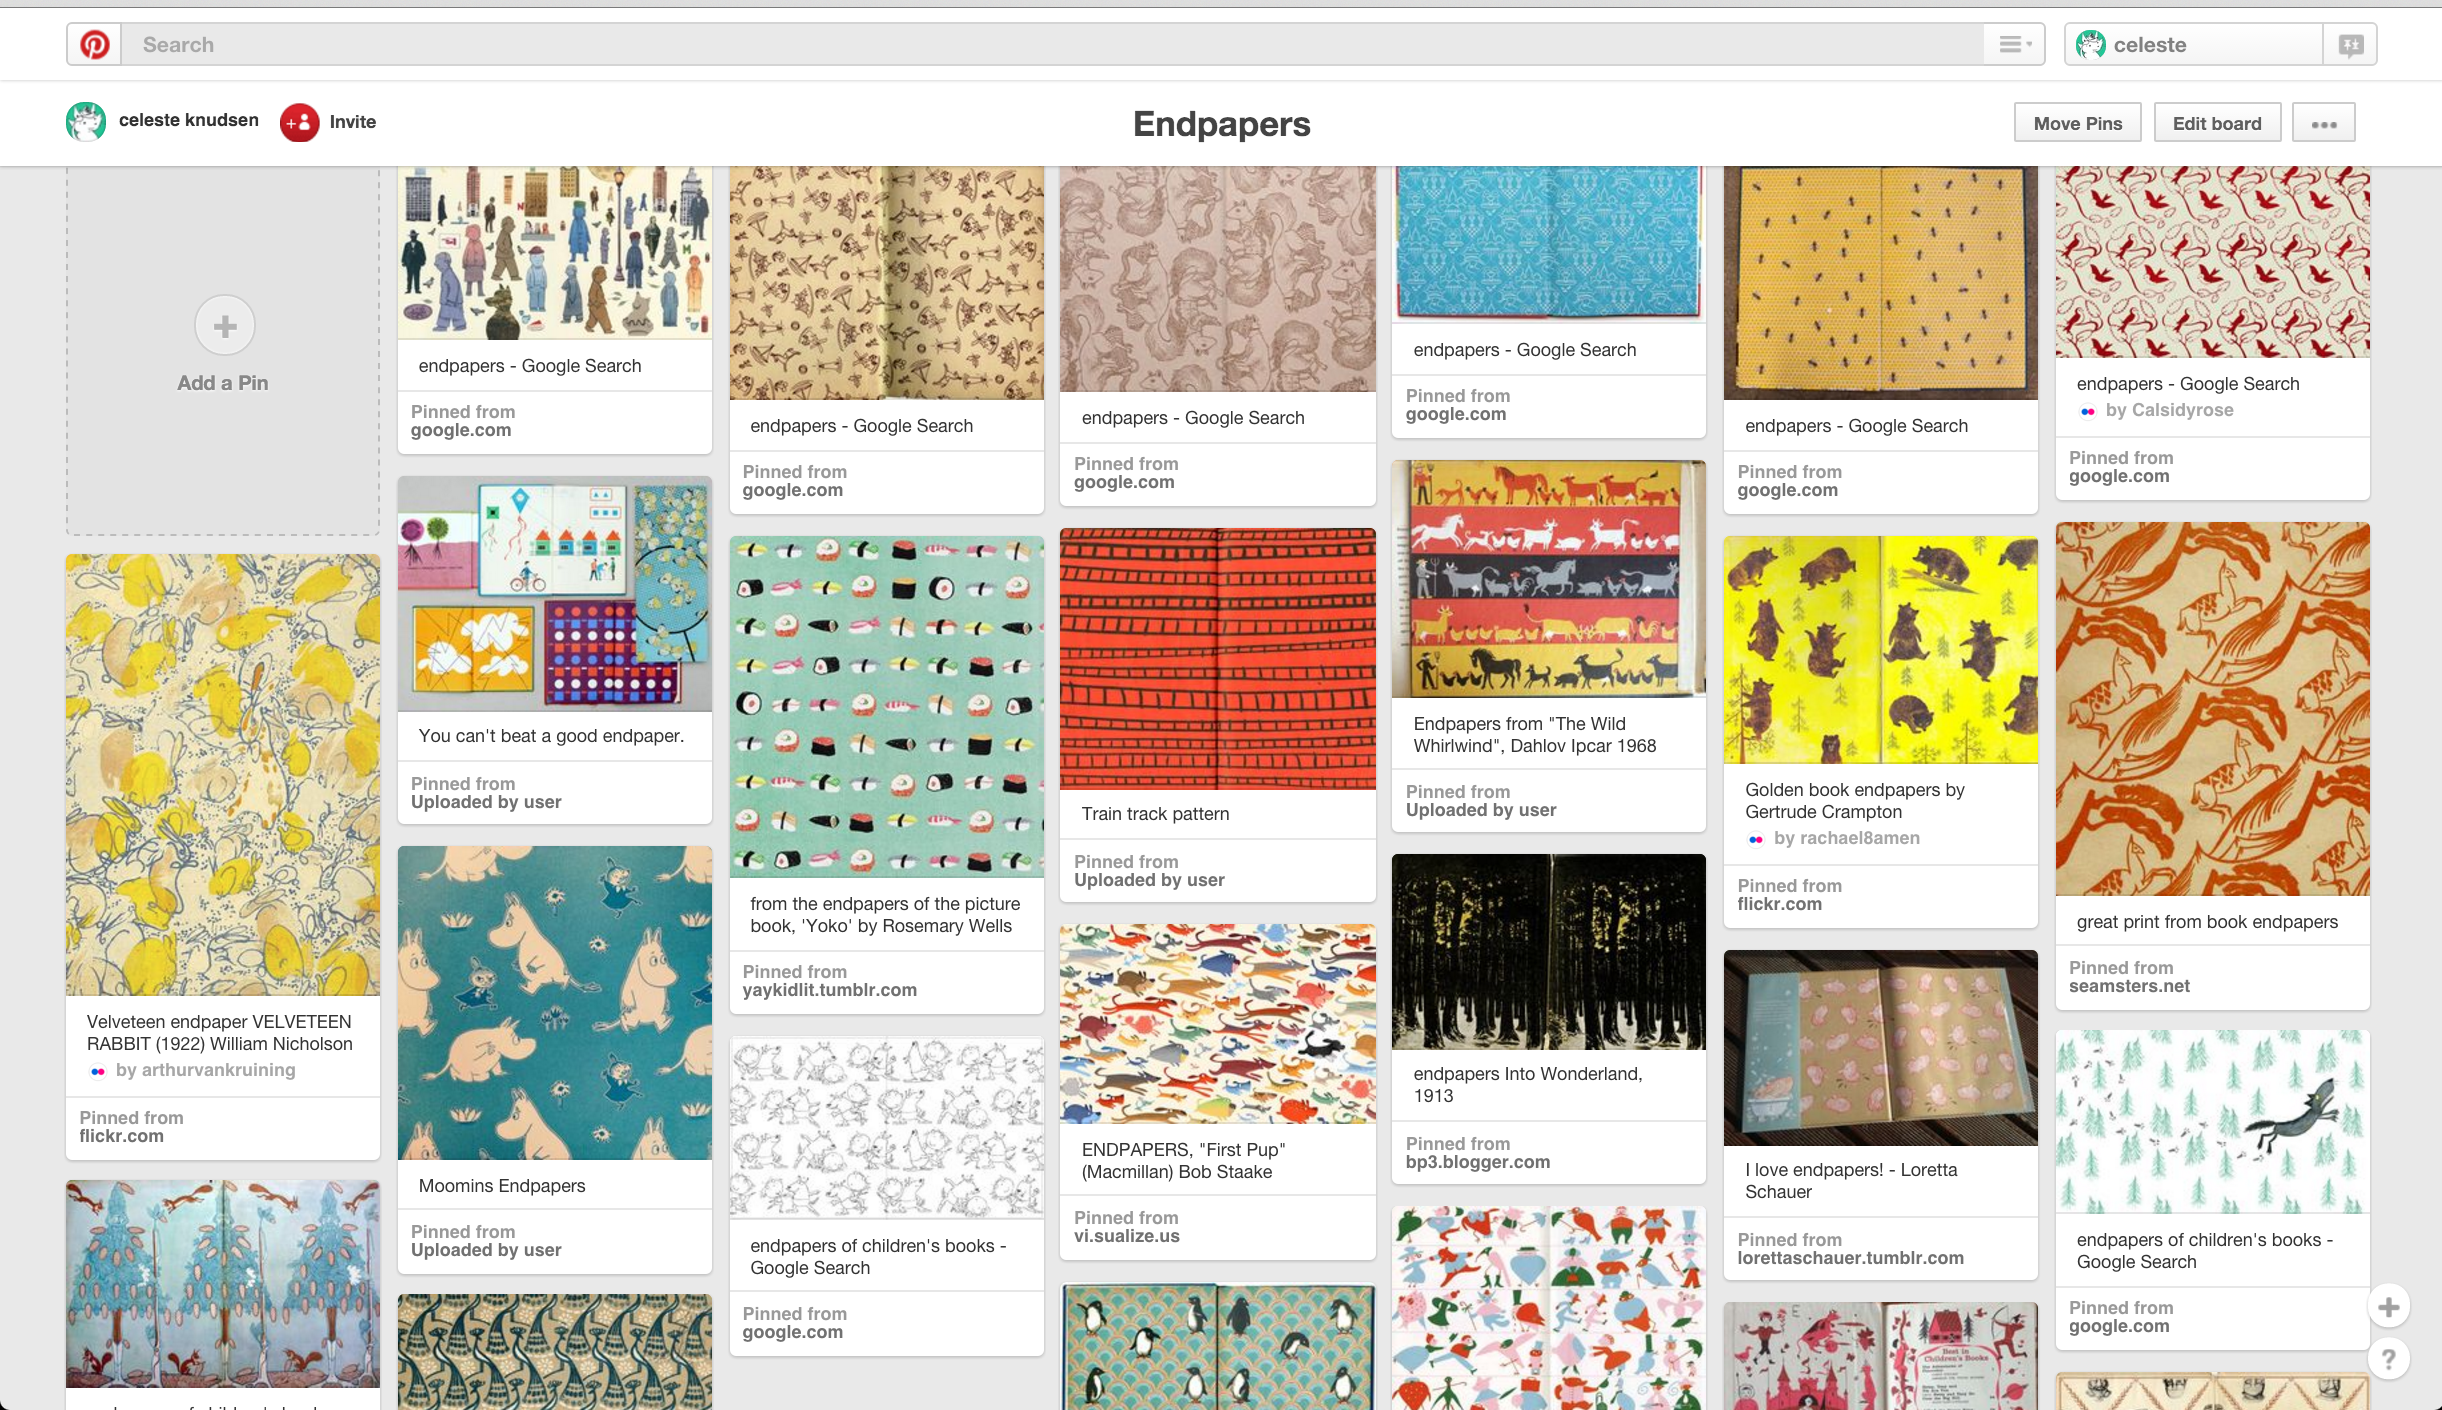 Endpapers Pinterest Board